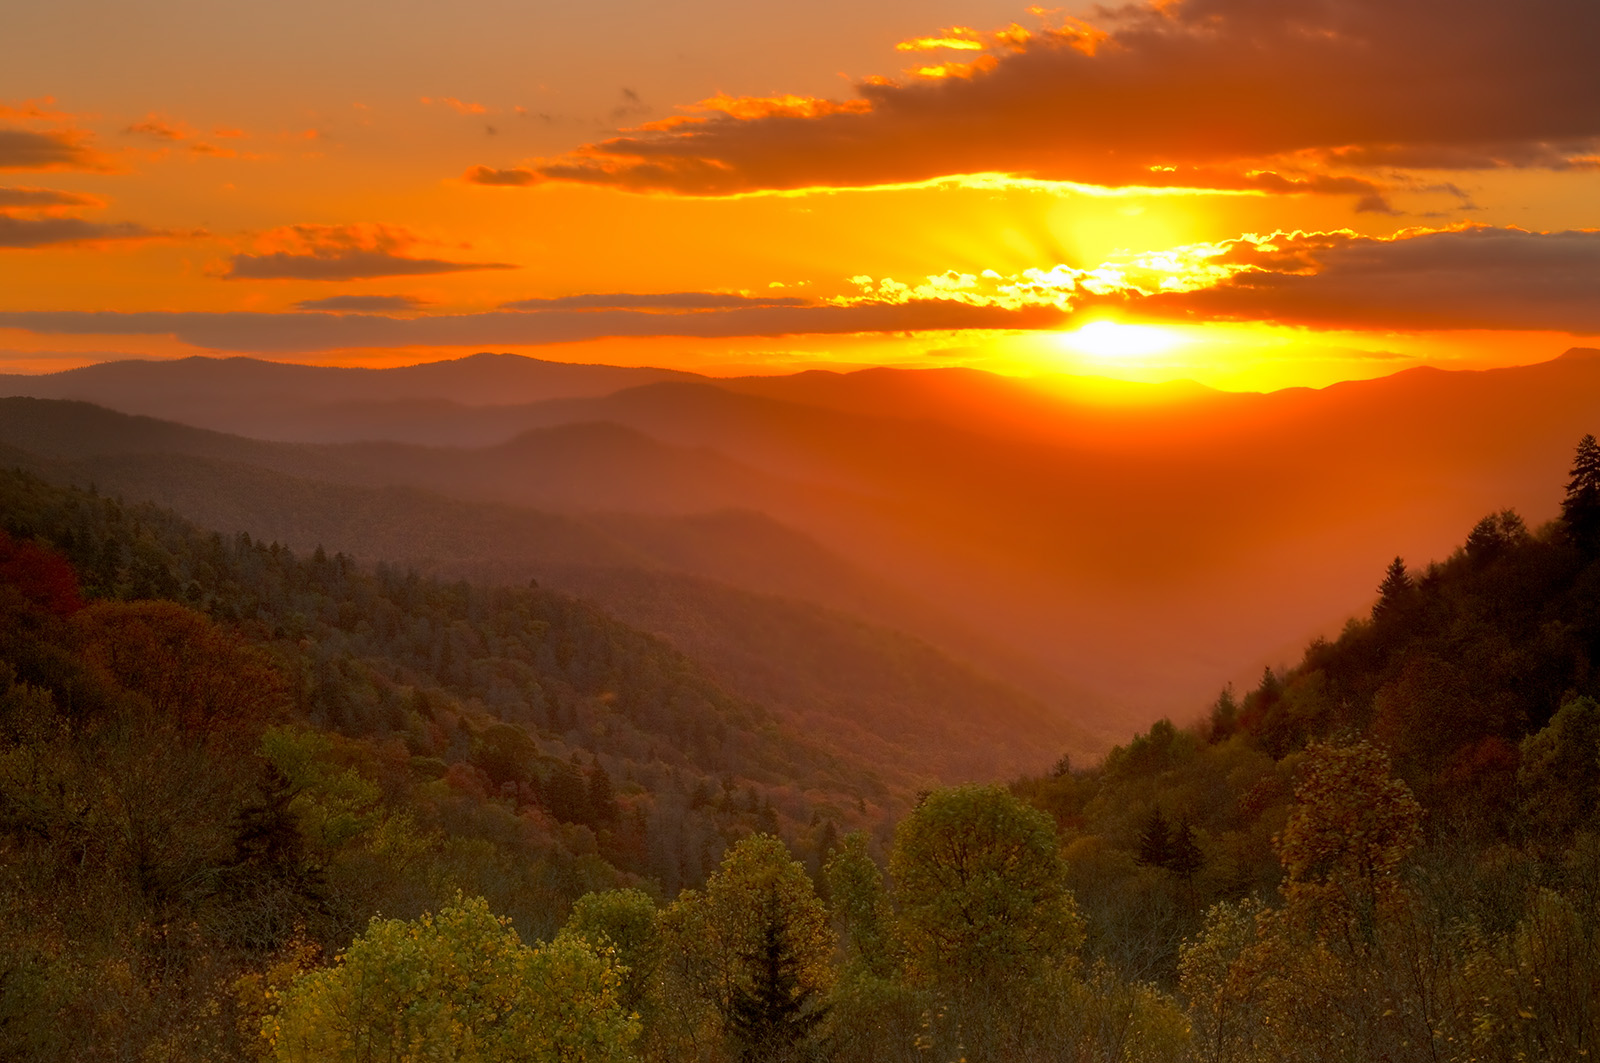 Oconoluftee Valley, Great Smoky Mountains National Park